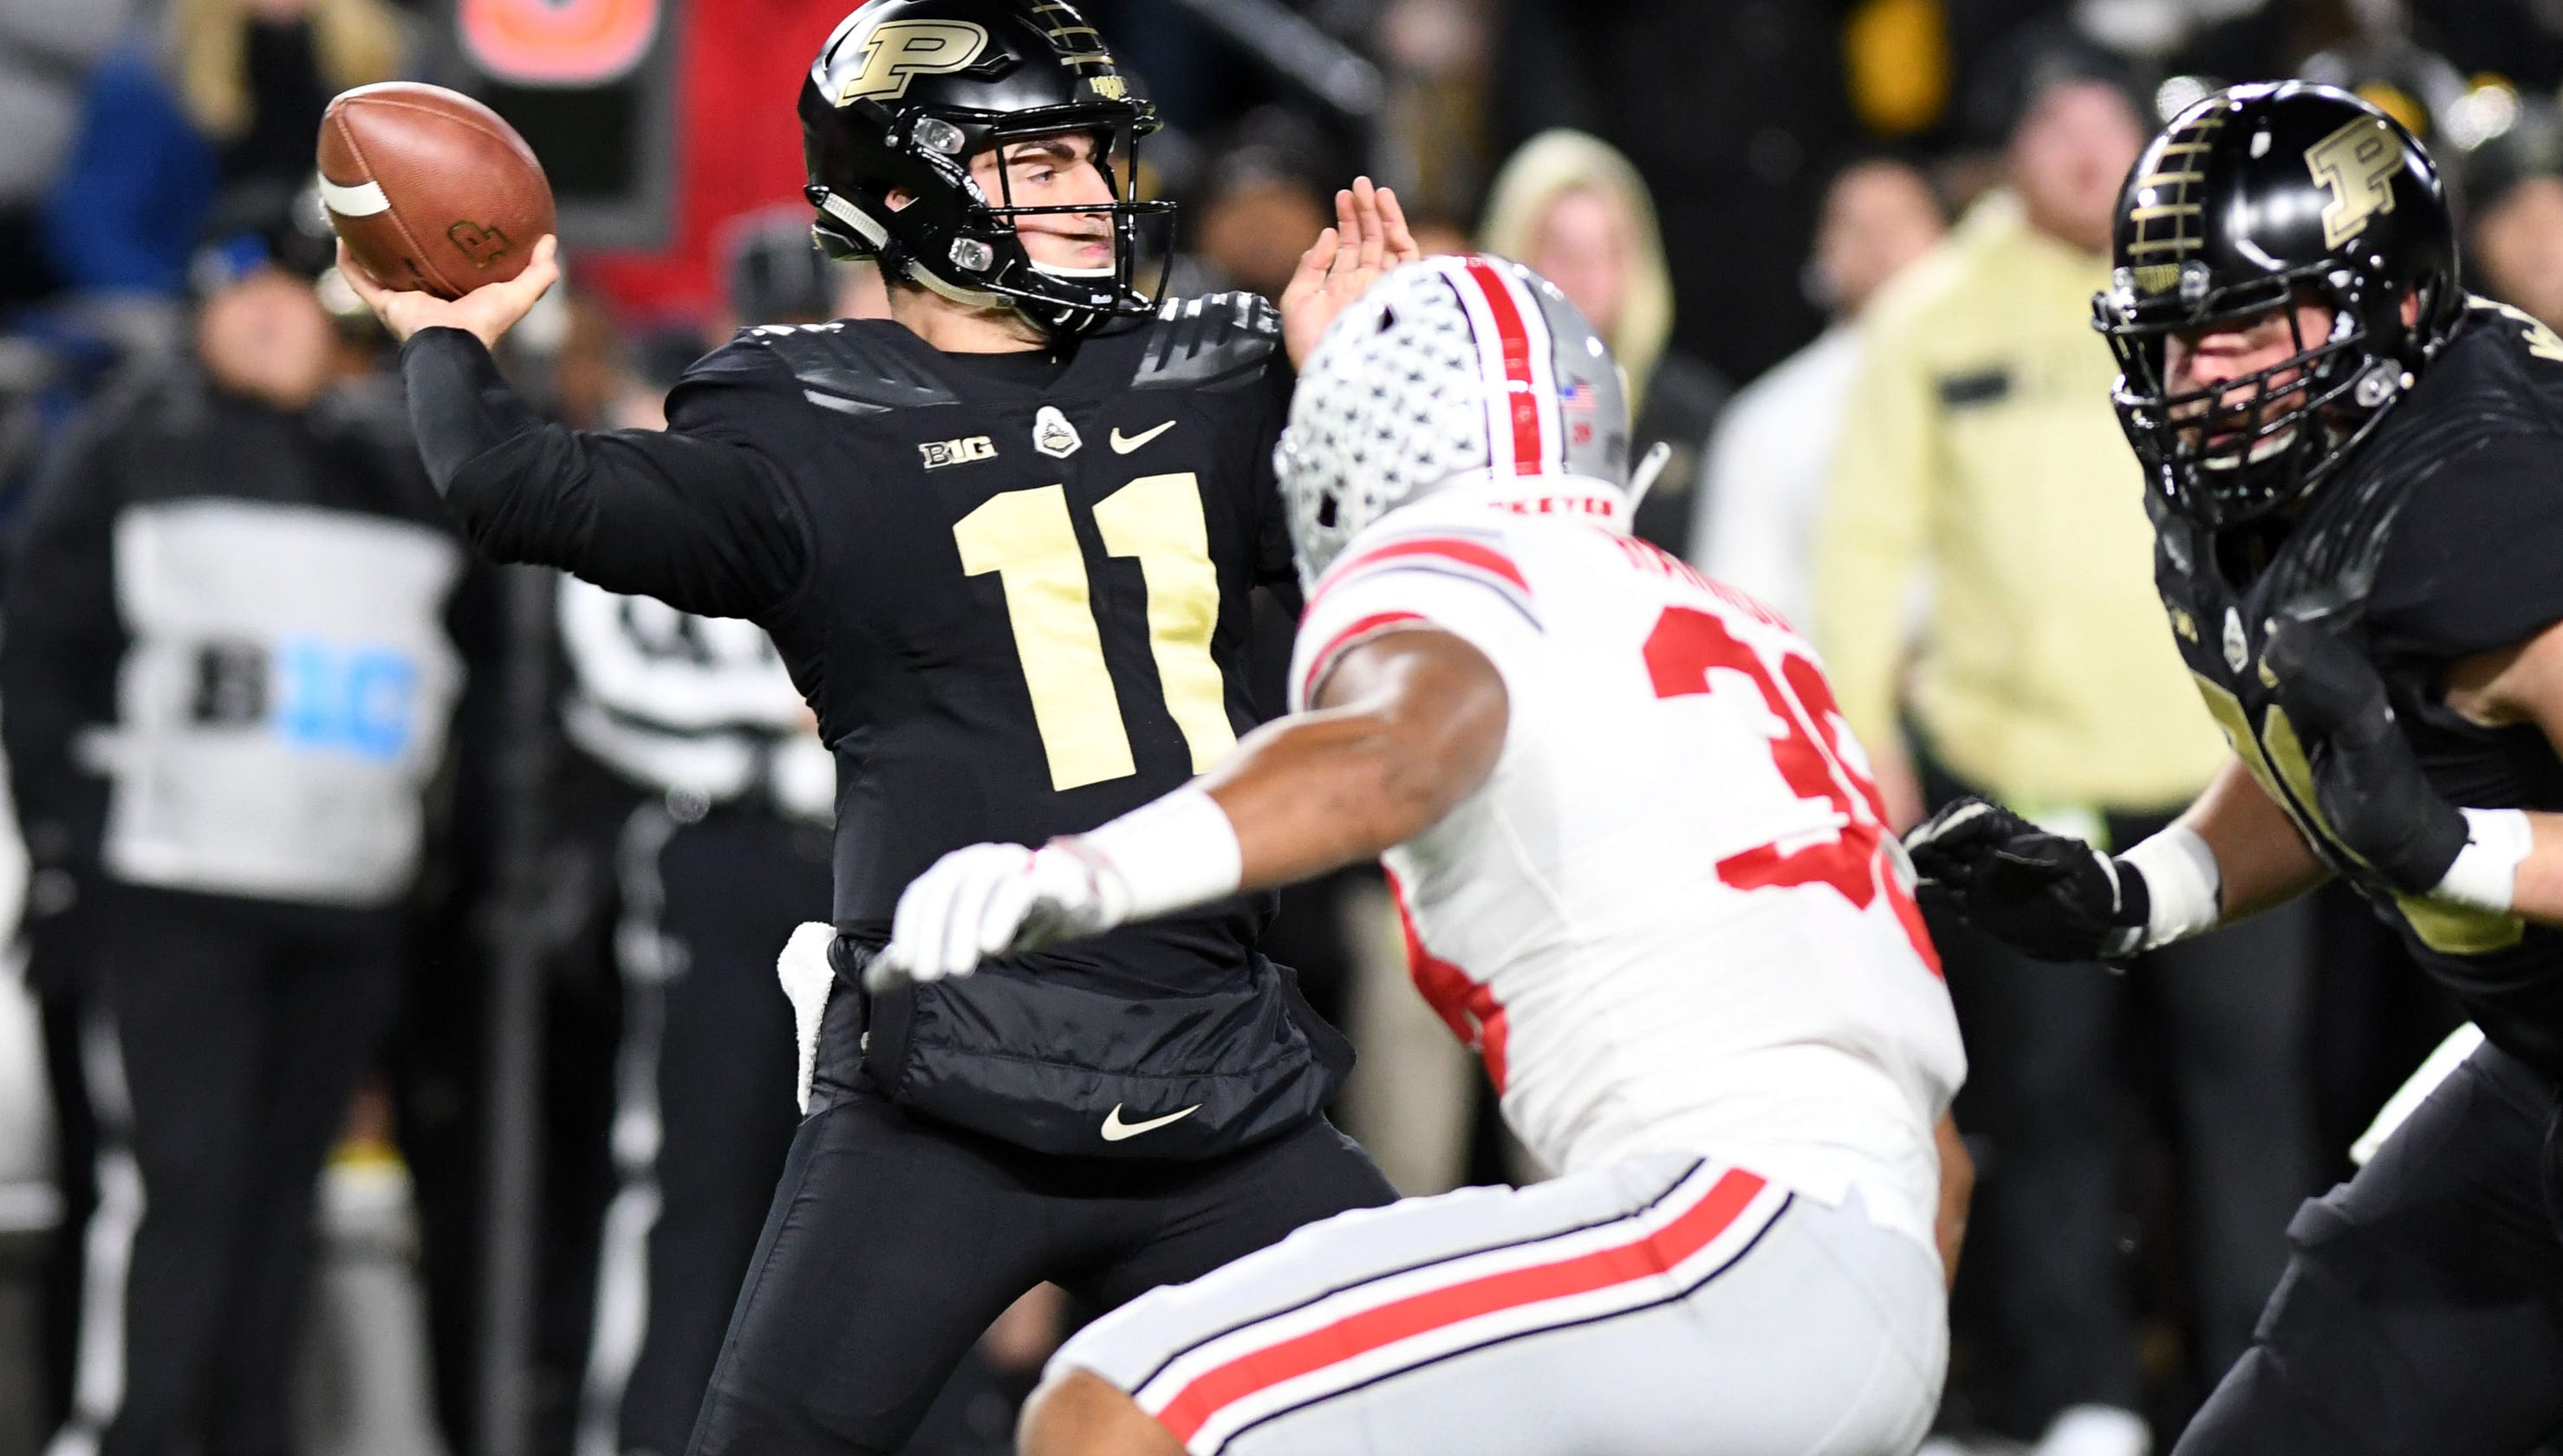 Purdue football  5 facts from the Boilermakers  last top-5 win 749b58ced